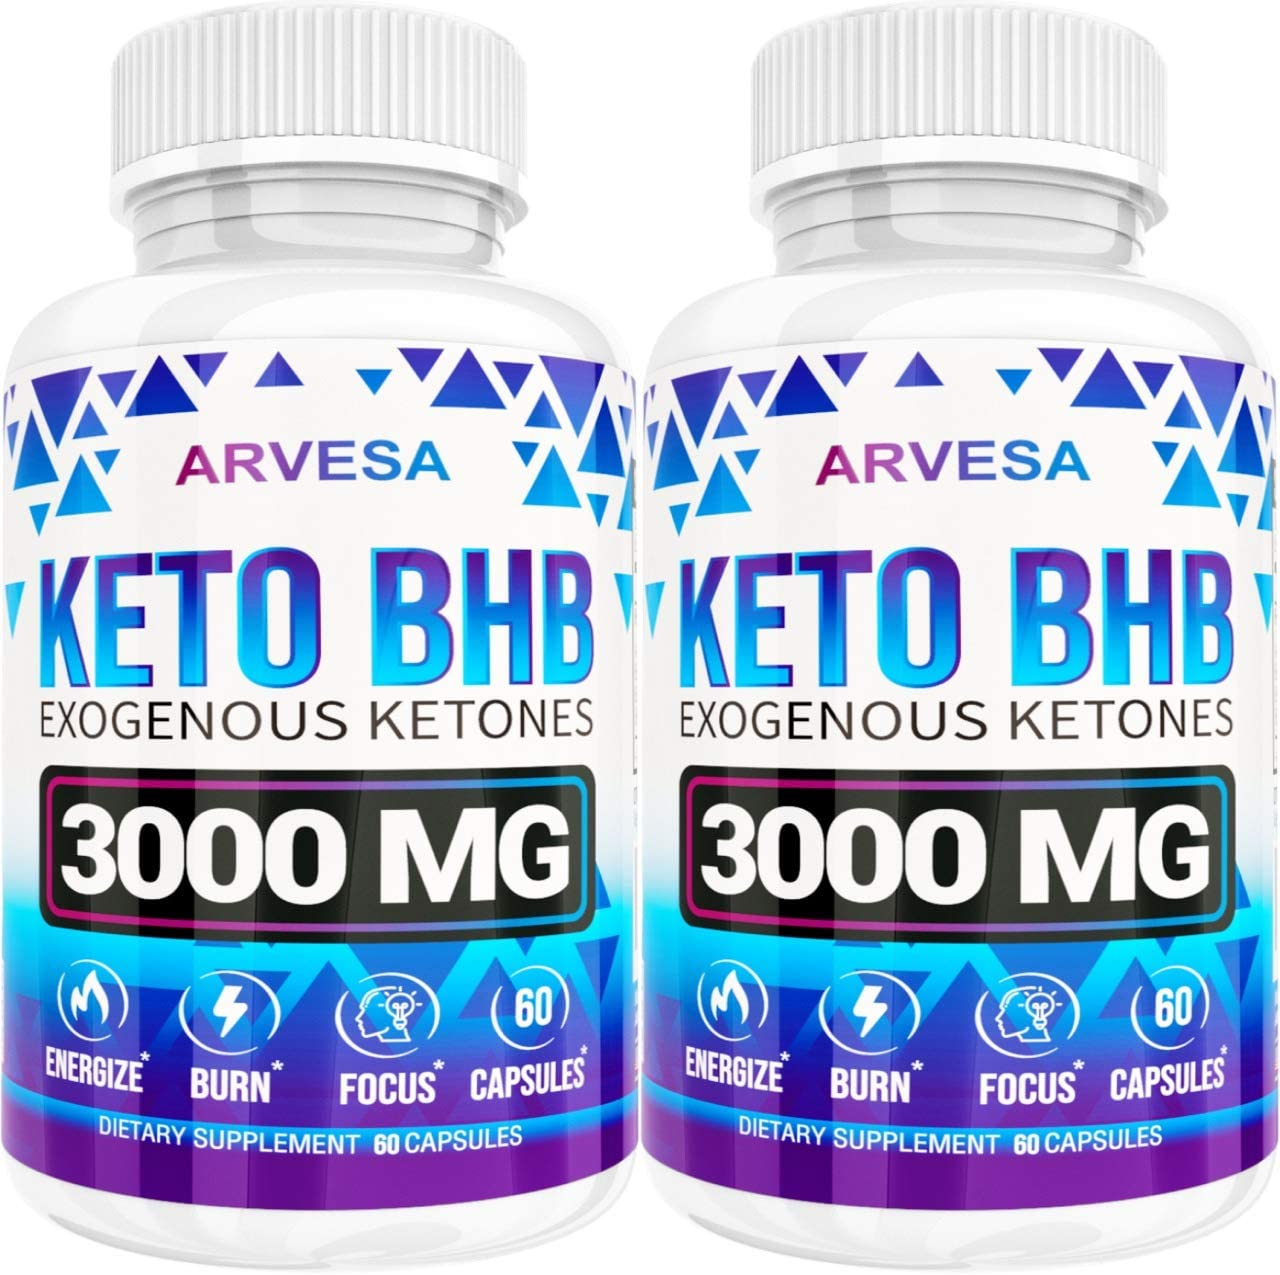 Keto Diet Pills – 5X Dose 2 pack 3000mg Keto BHB – Best Exogenous Ketones BHB Supplement for Women and Men – Boost Energy Focus, Support Metabolism – Made in USA – 120 Capsules